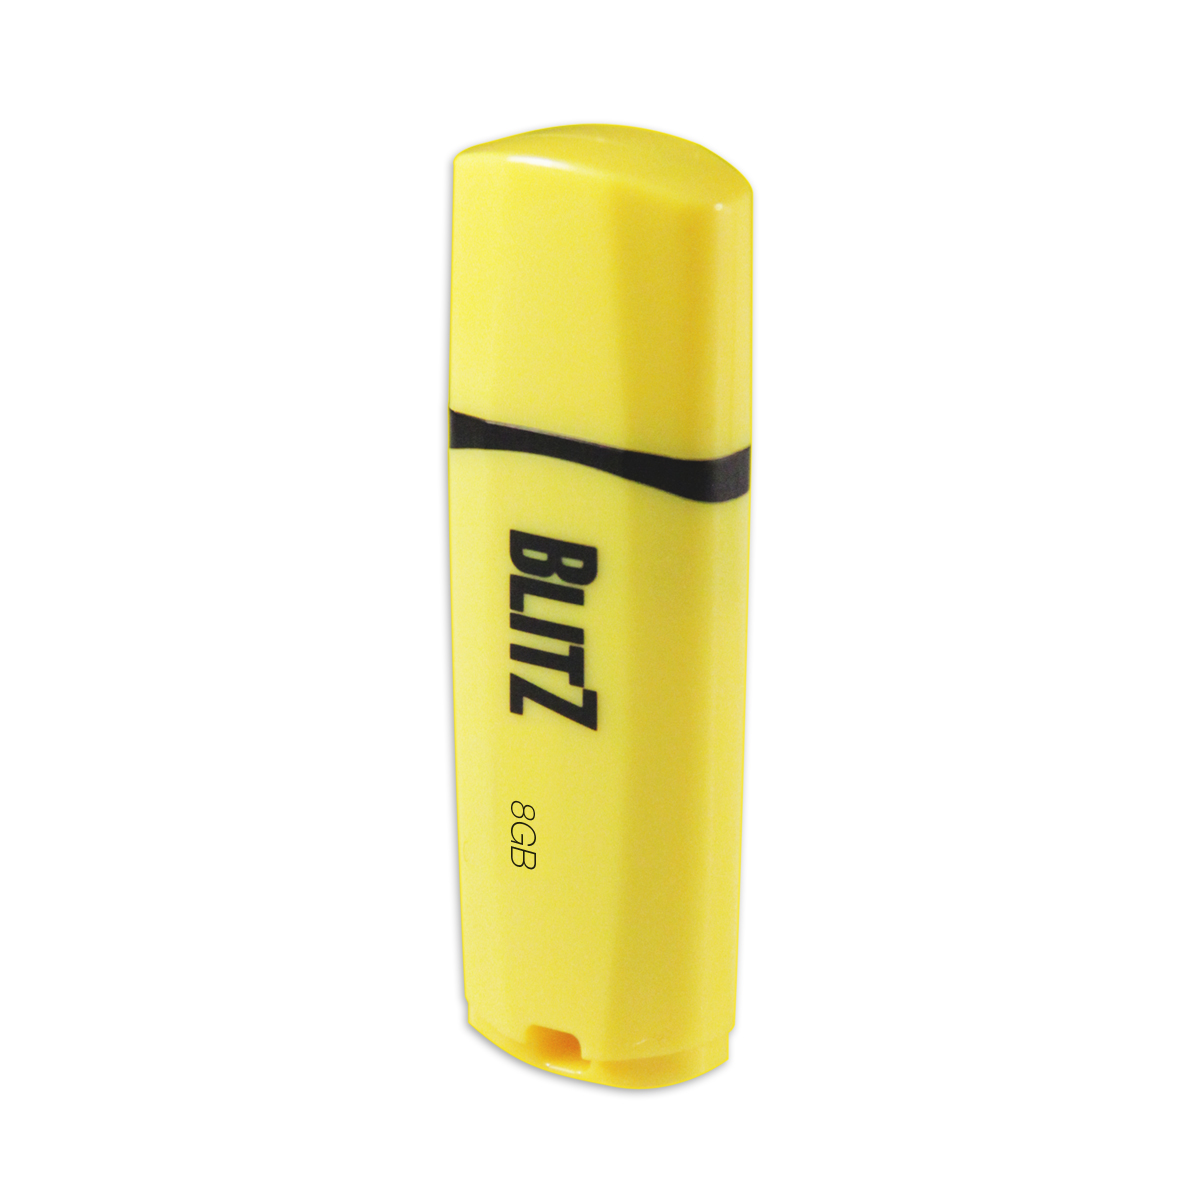 Flash disk Patriot Blitz 8GB USB 3.0 Yellow